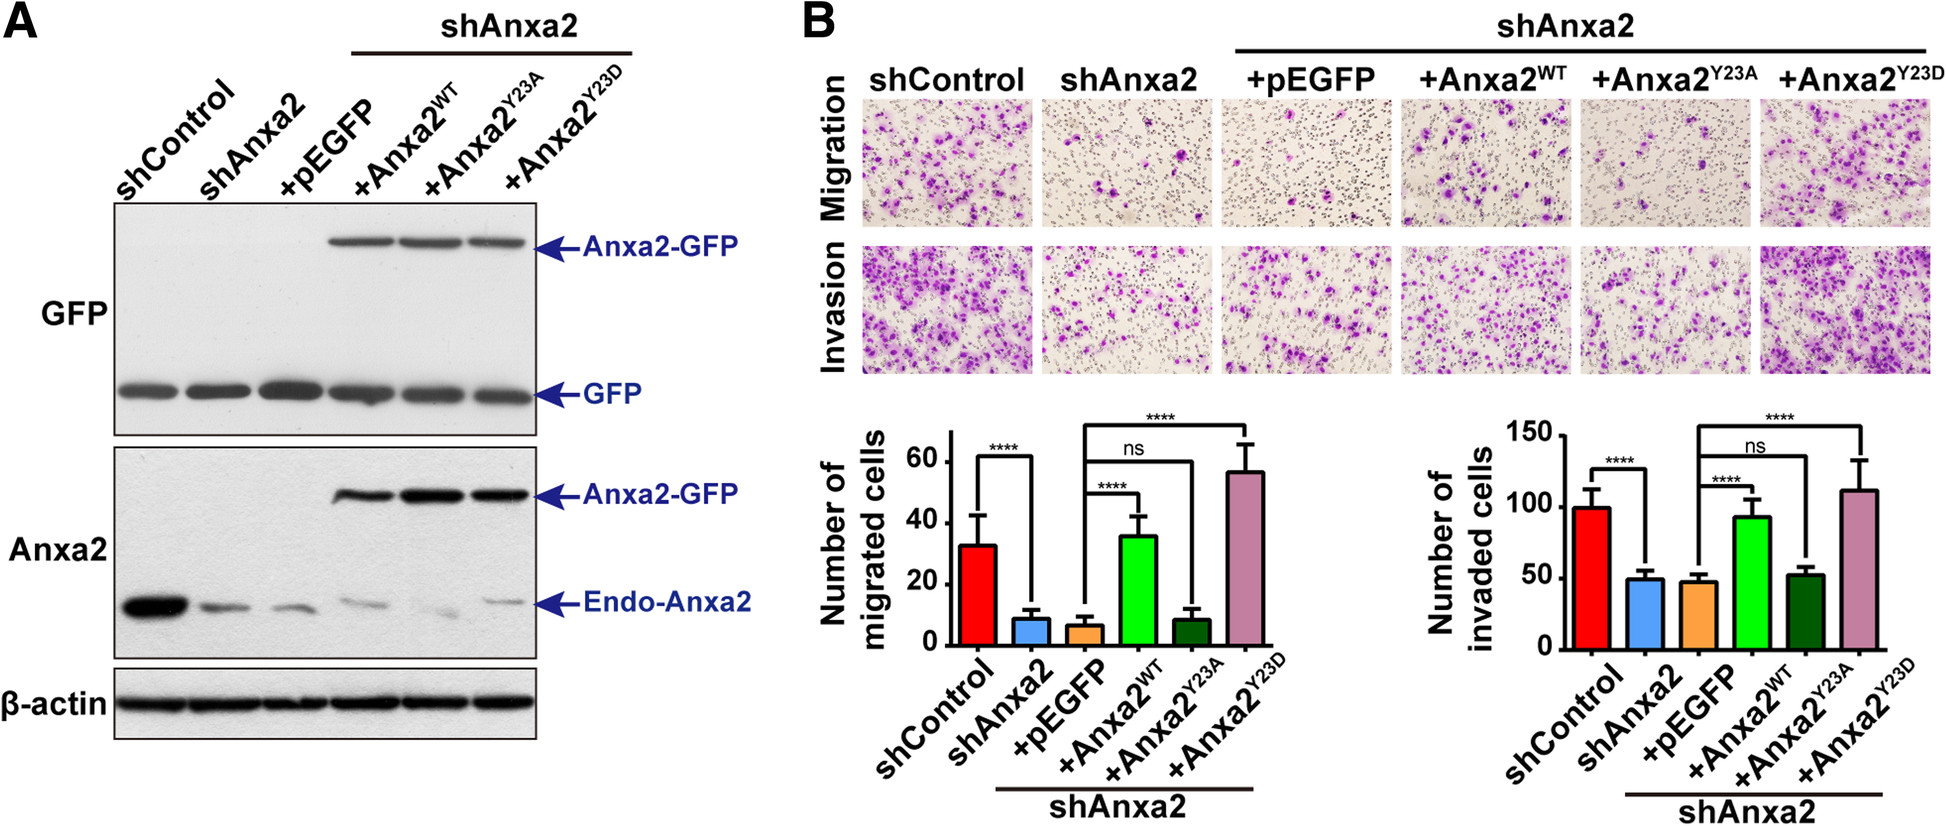 Rack1 mediates tyrosine phosphorylation of Anxa2 by Src and promotes